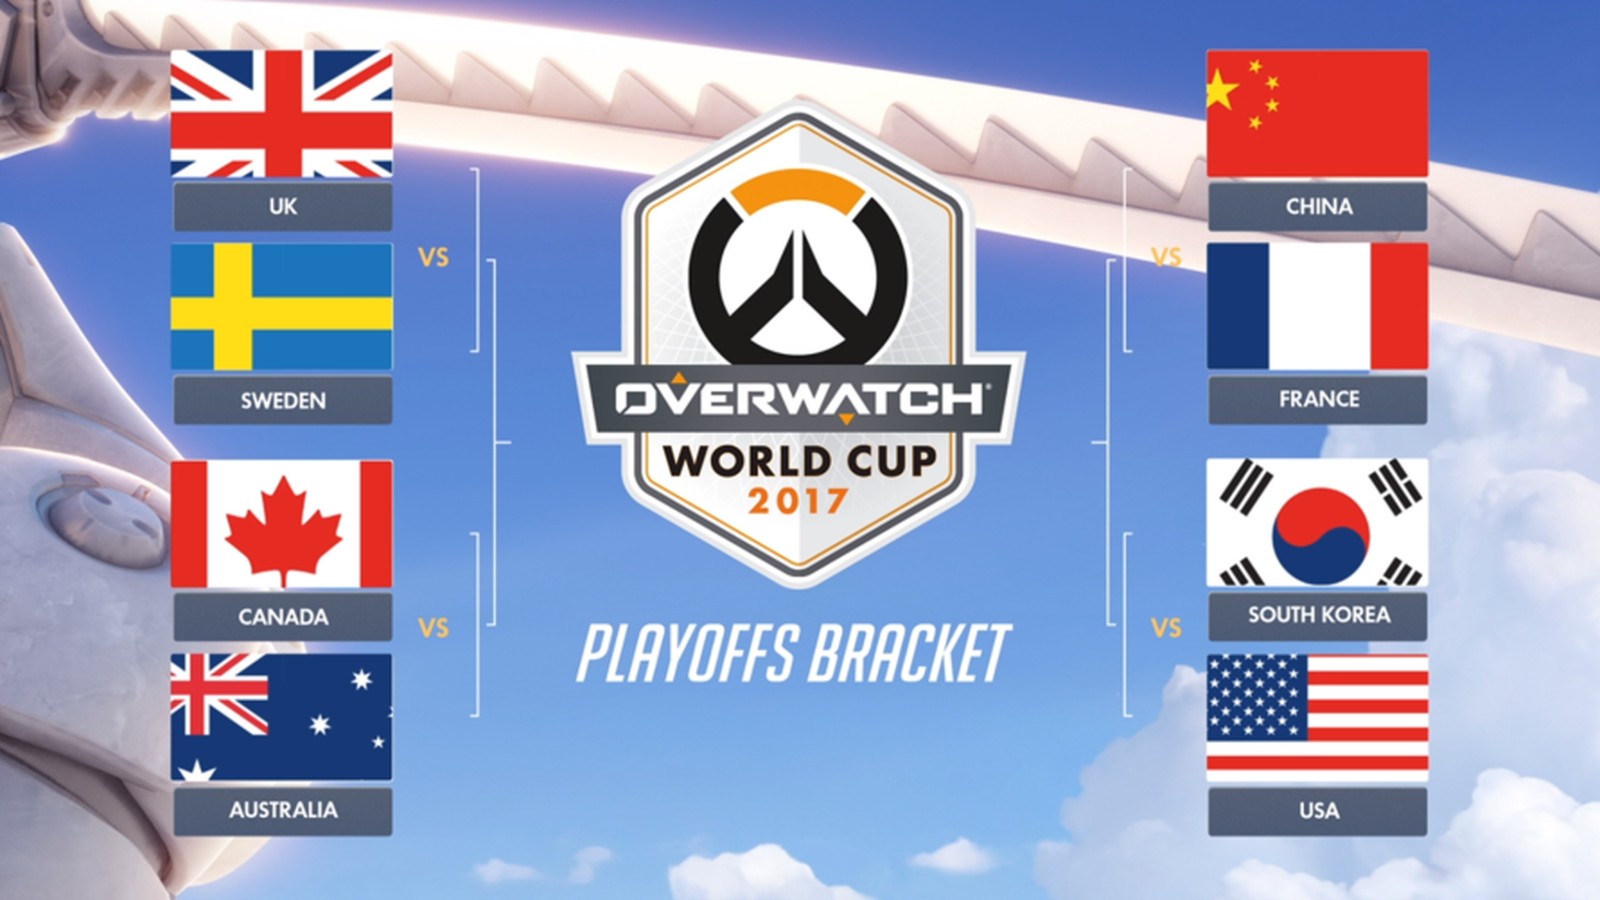 We finally know the opening match ups at Blizzcon for the Overwatch World Cup